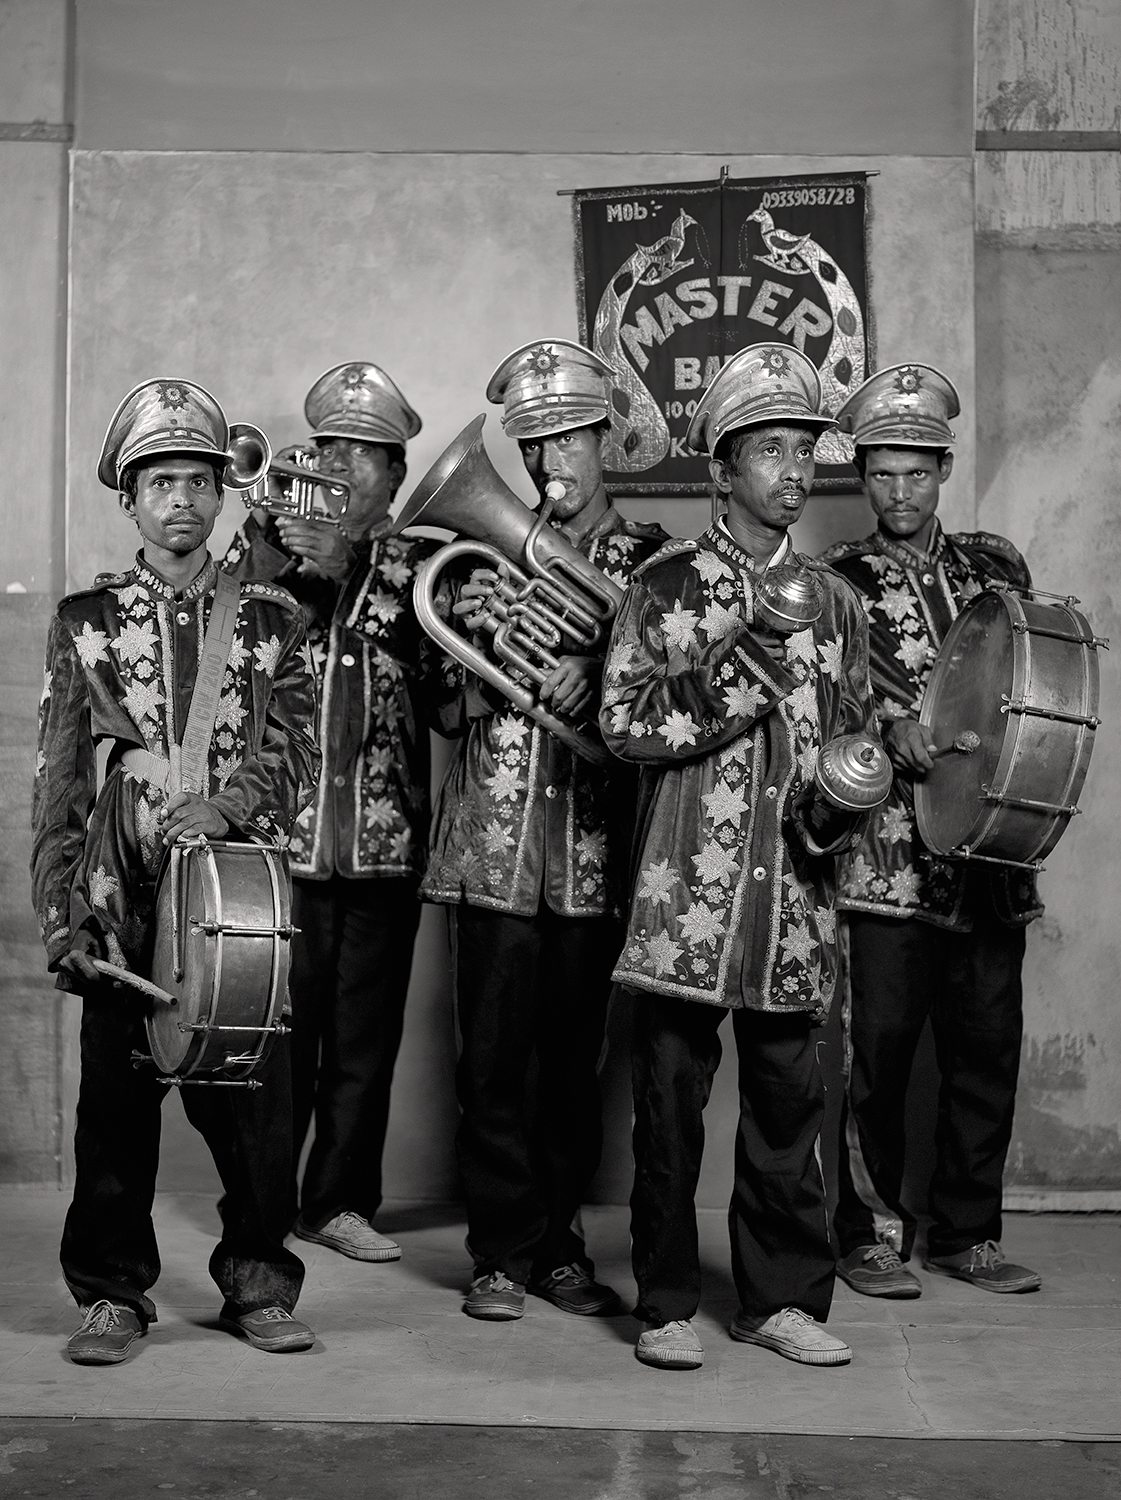 MASTER BAND-PARTY BOYS, $6 ON ASSIGNMENT, 2011